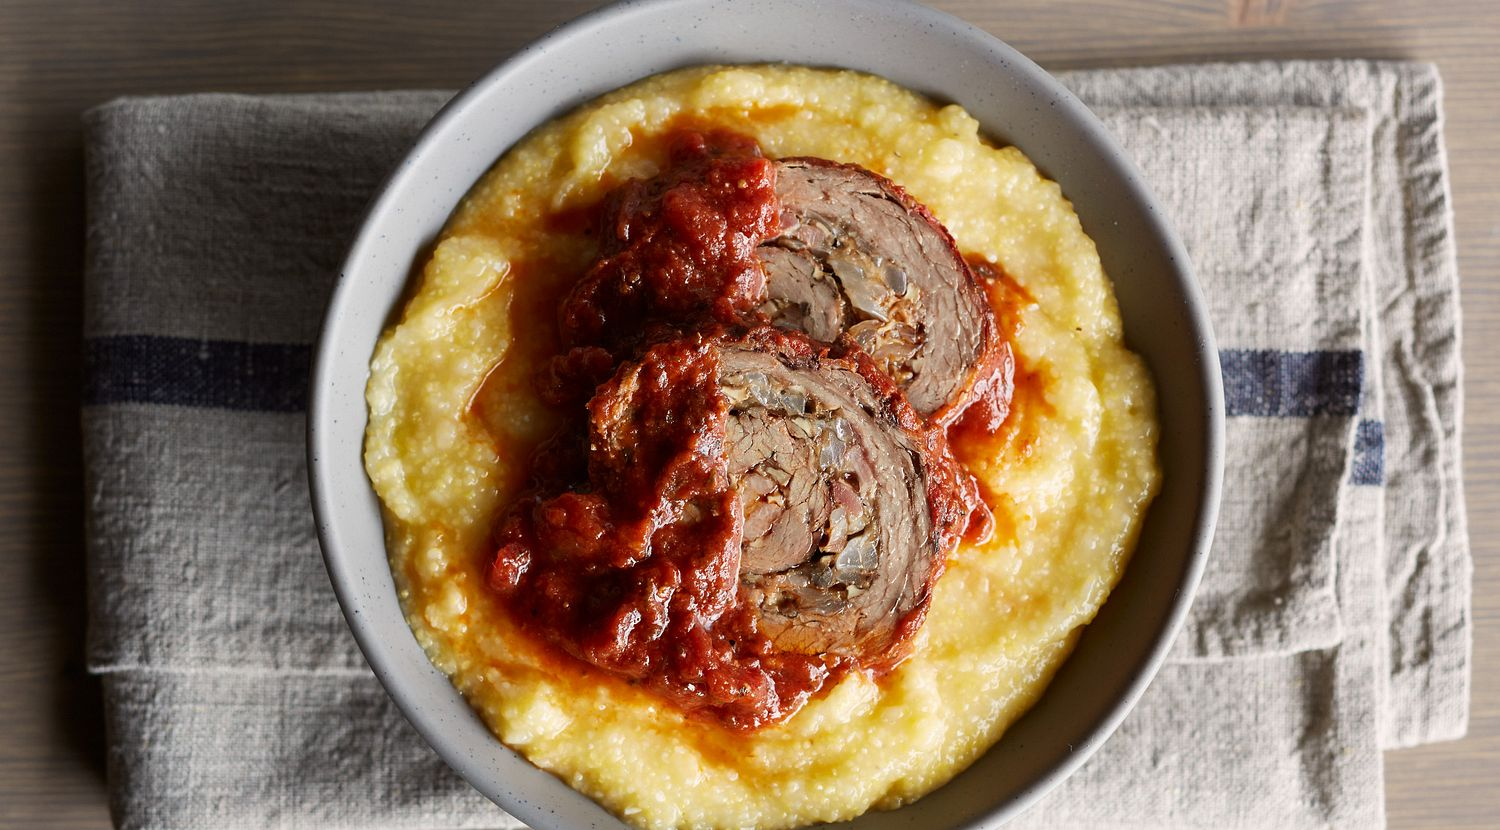 Slow-Cooked Beef and Mushroom Braciole